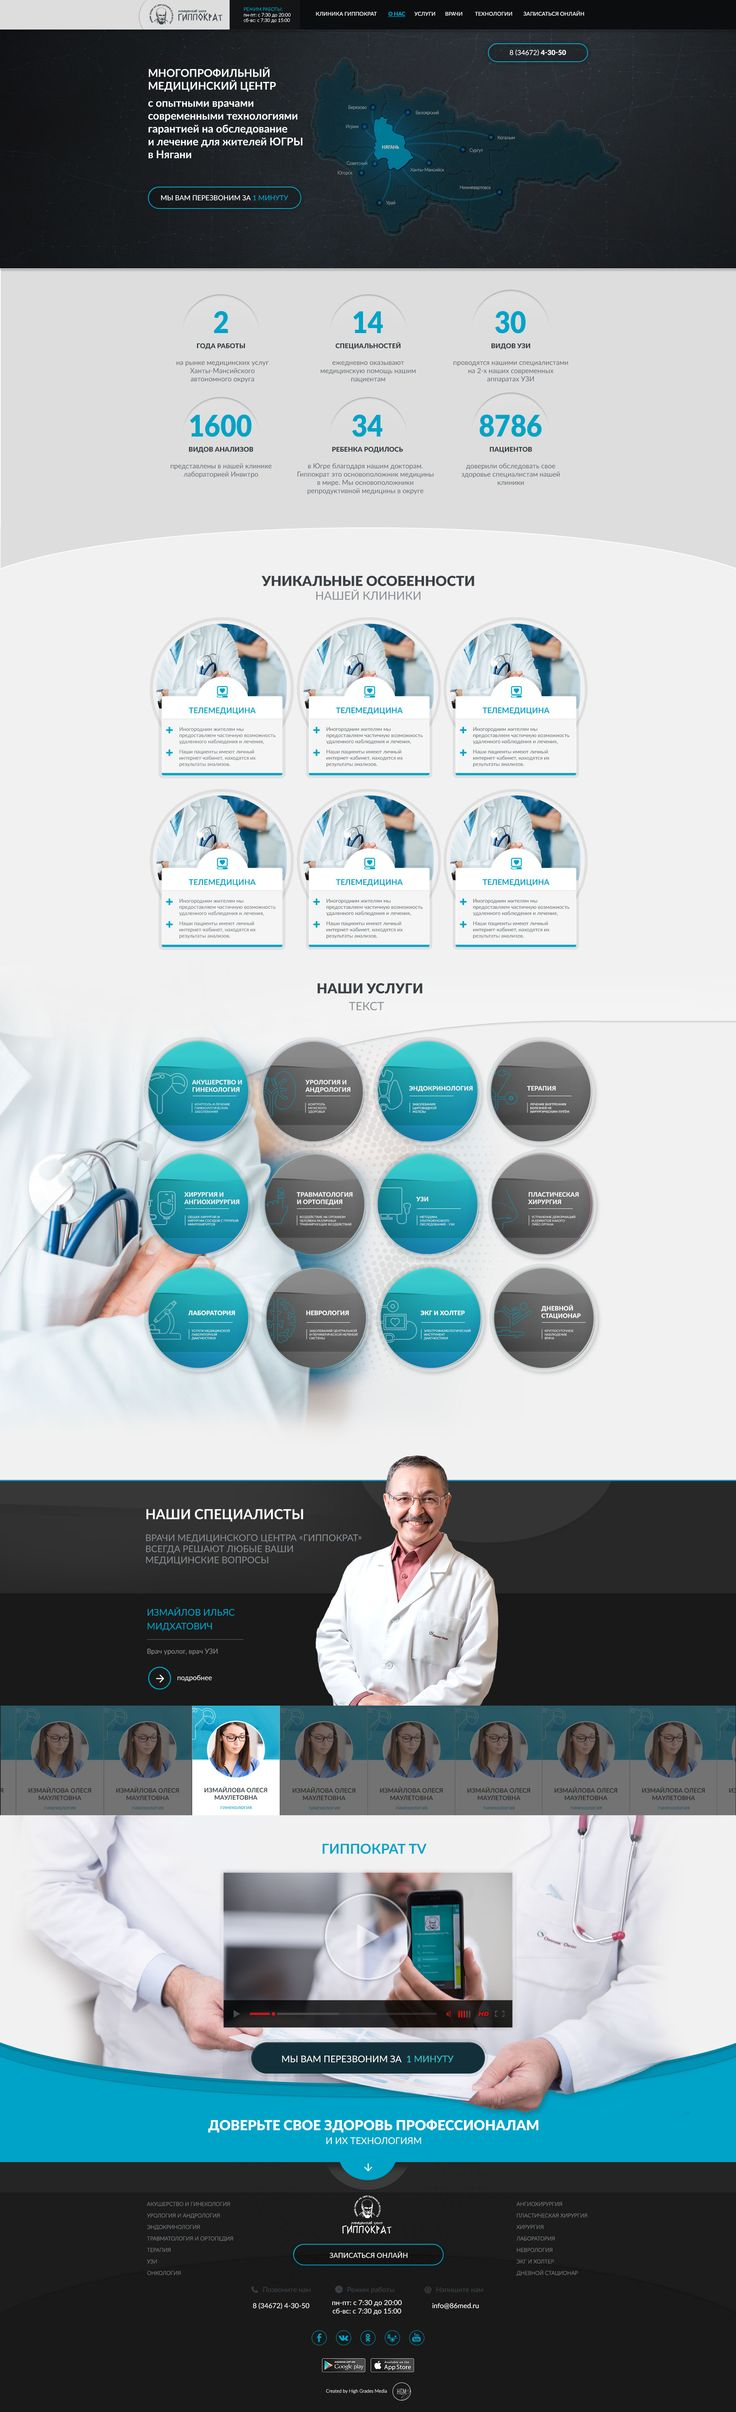 GIPPOCRATES medical centre  #landing, #page, #design, #web, #UI/UX,  #HTML5, #photoshop, #website, #medical,  #clinic